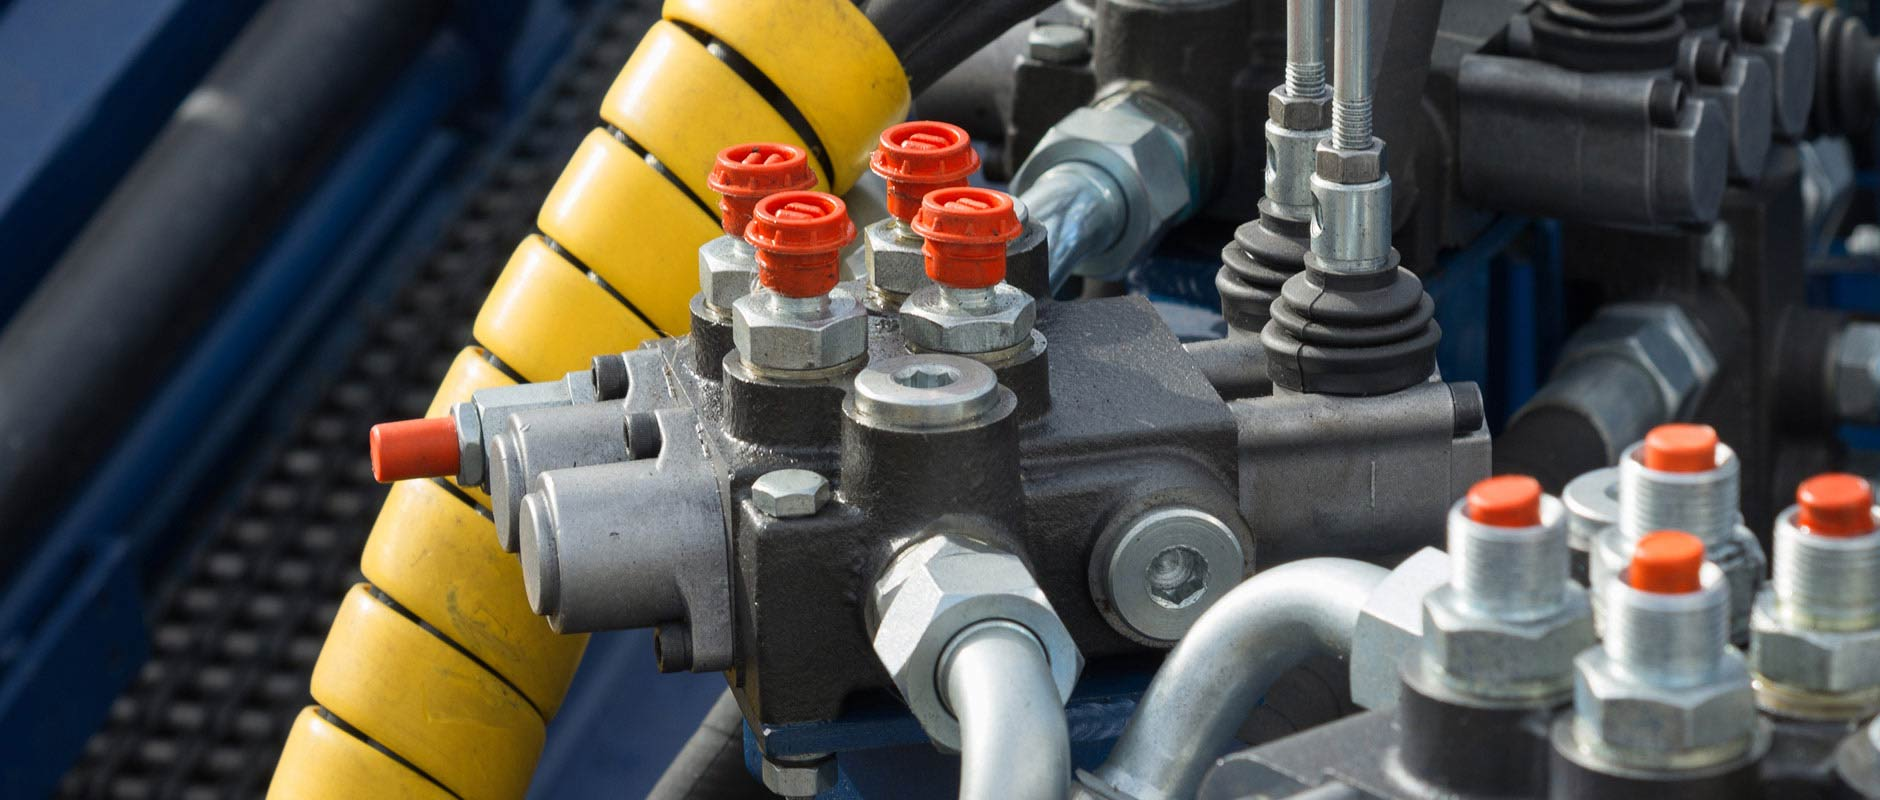 applied hydraulic solutions hydraulic tubes fittings and levers